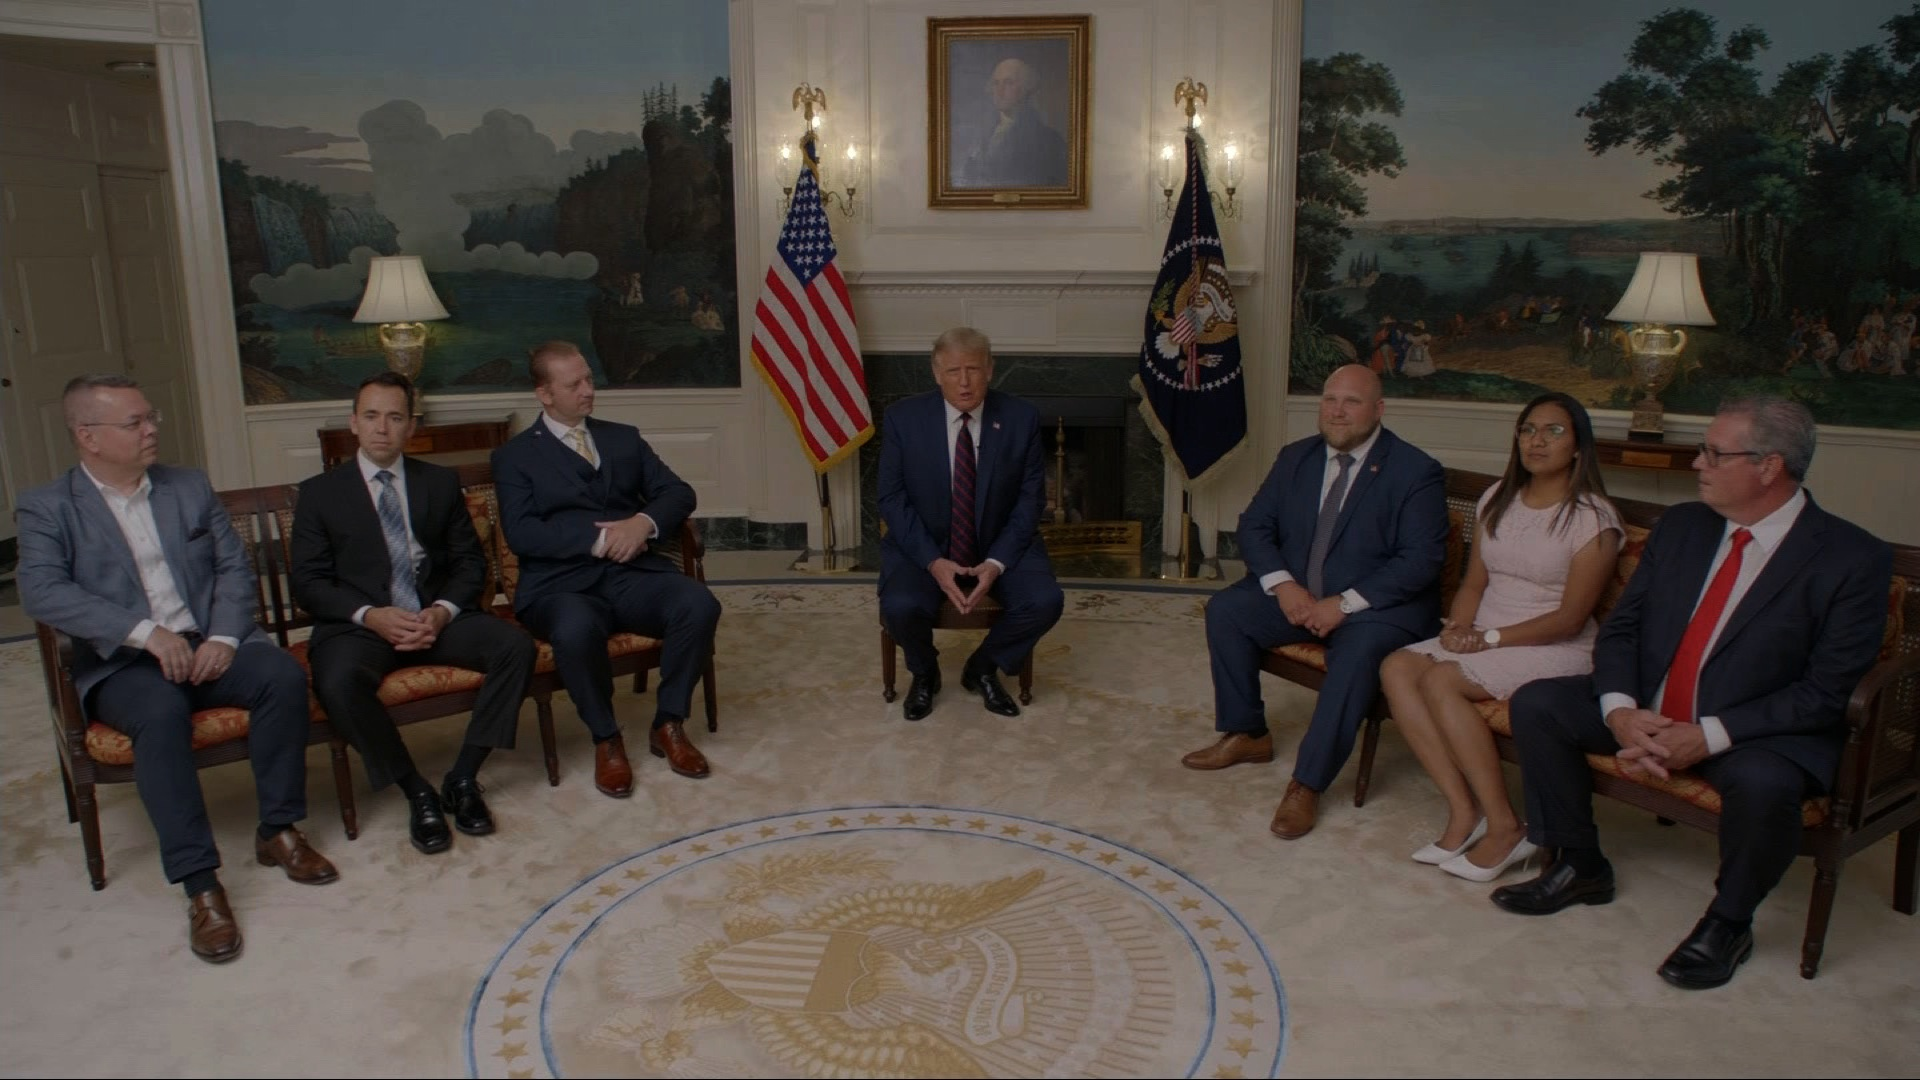 President Trump sits with former hostages and detainees who were freed during his administration.